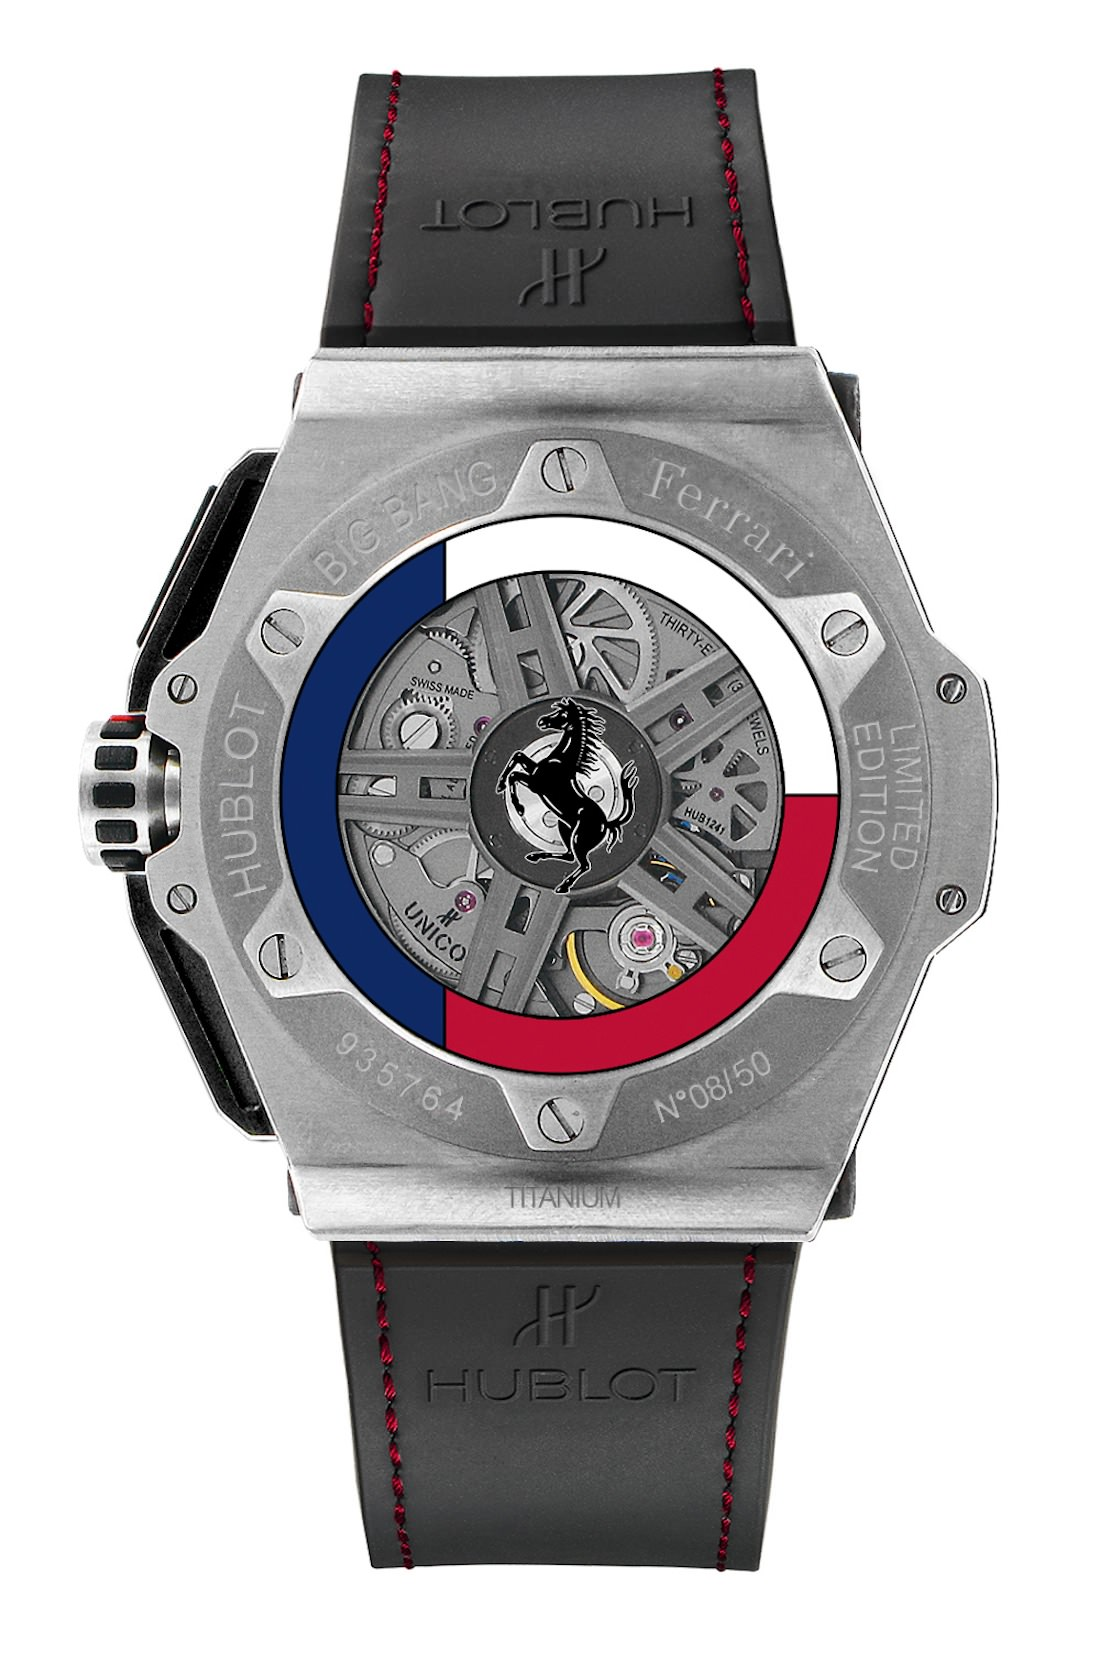 la montre big bang ferrari texas by hublot inspir e de la scuderia ferrari. Black Bedroom Furniture Sets. Home Design Ideas